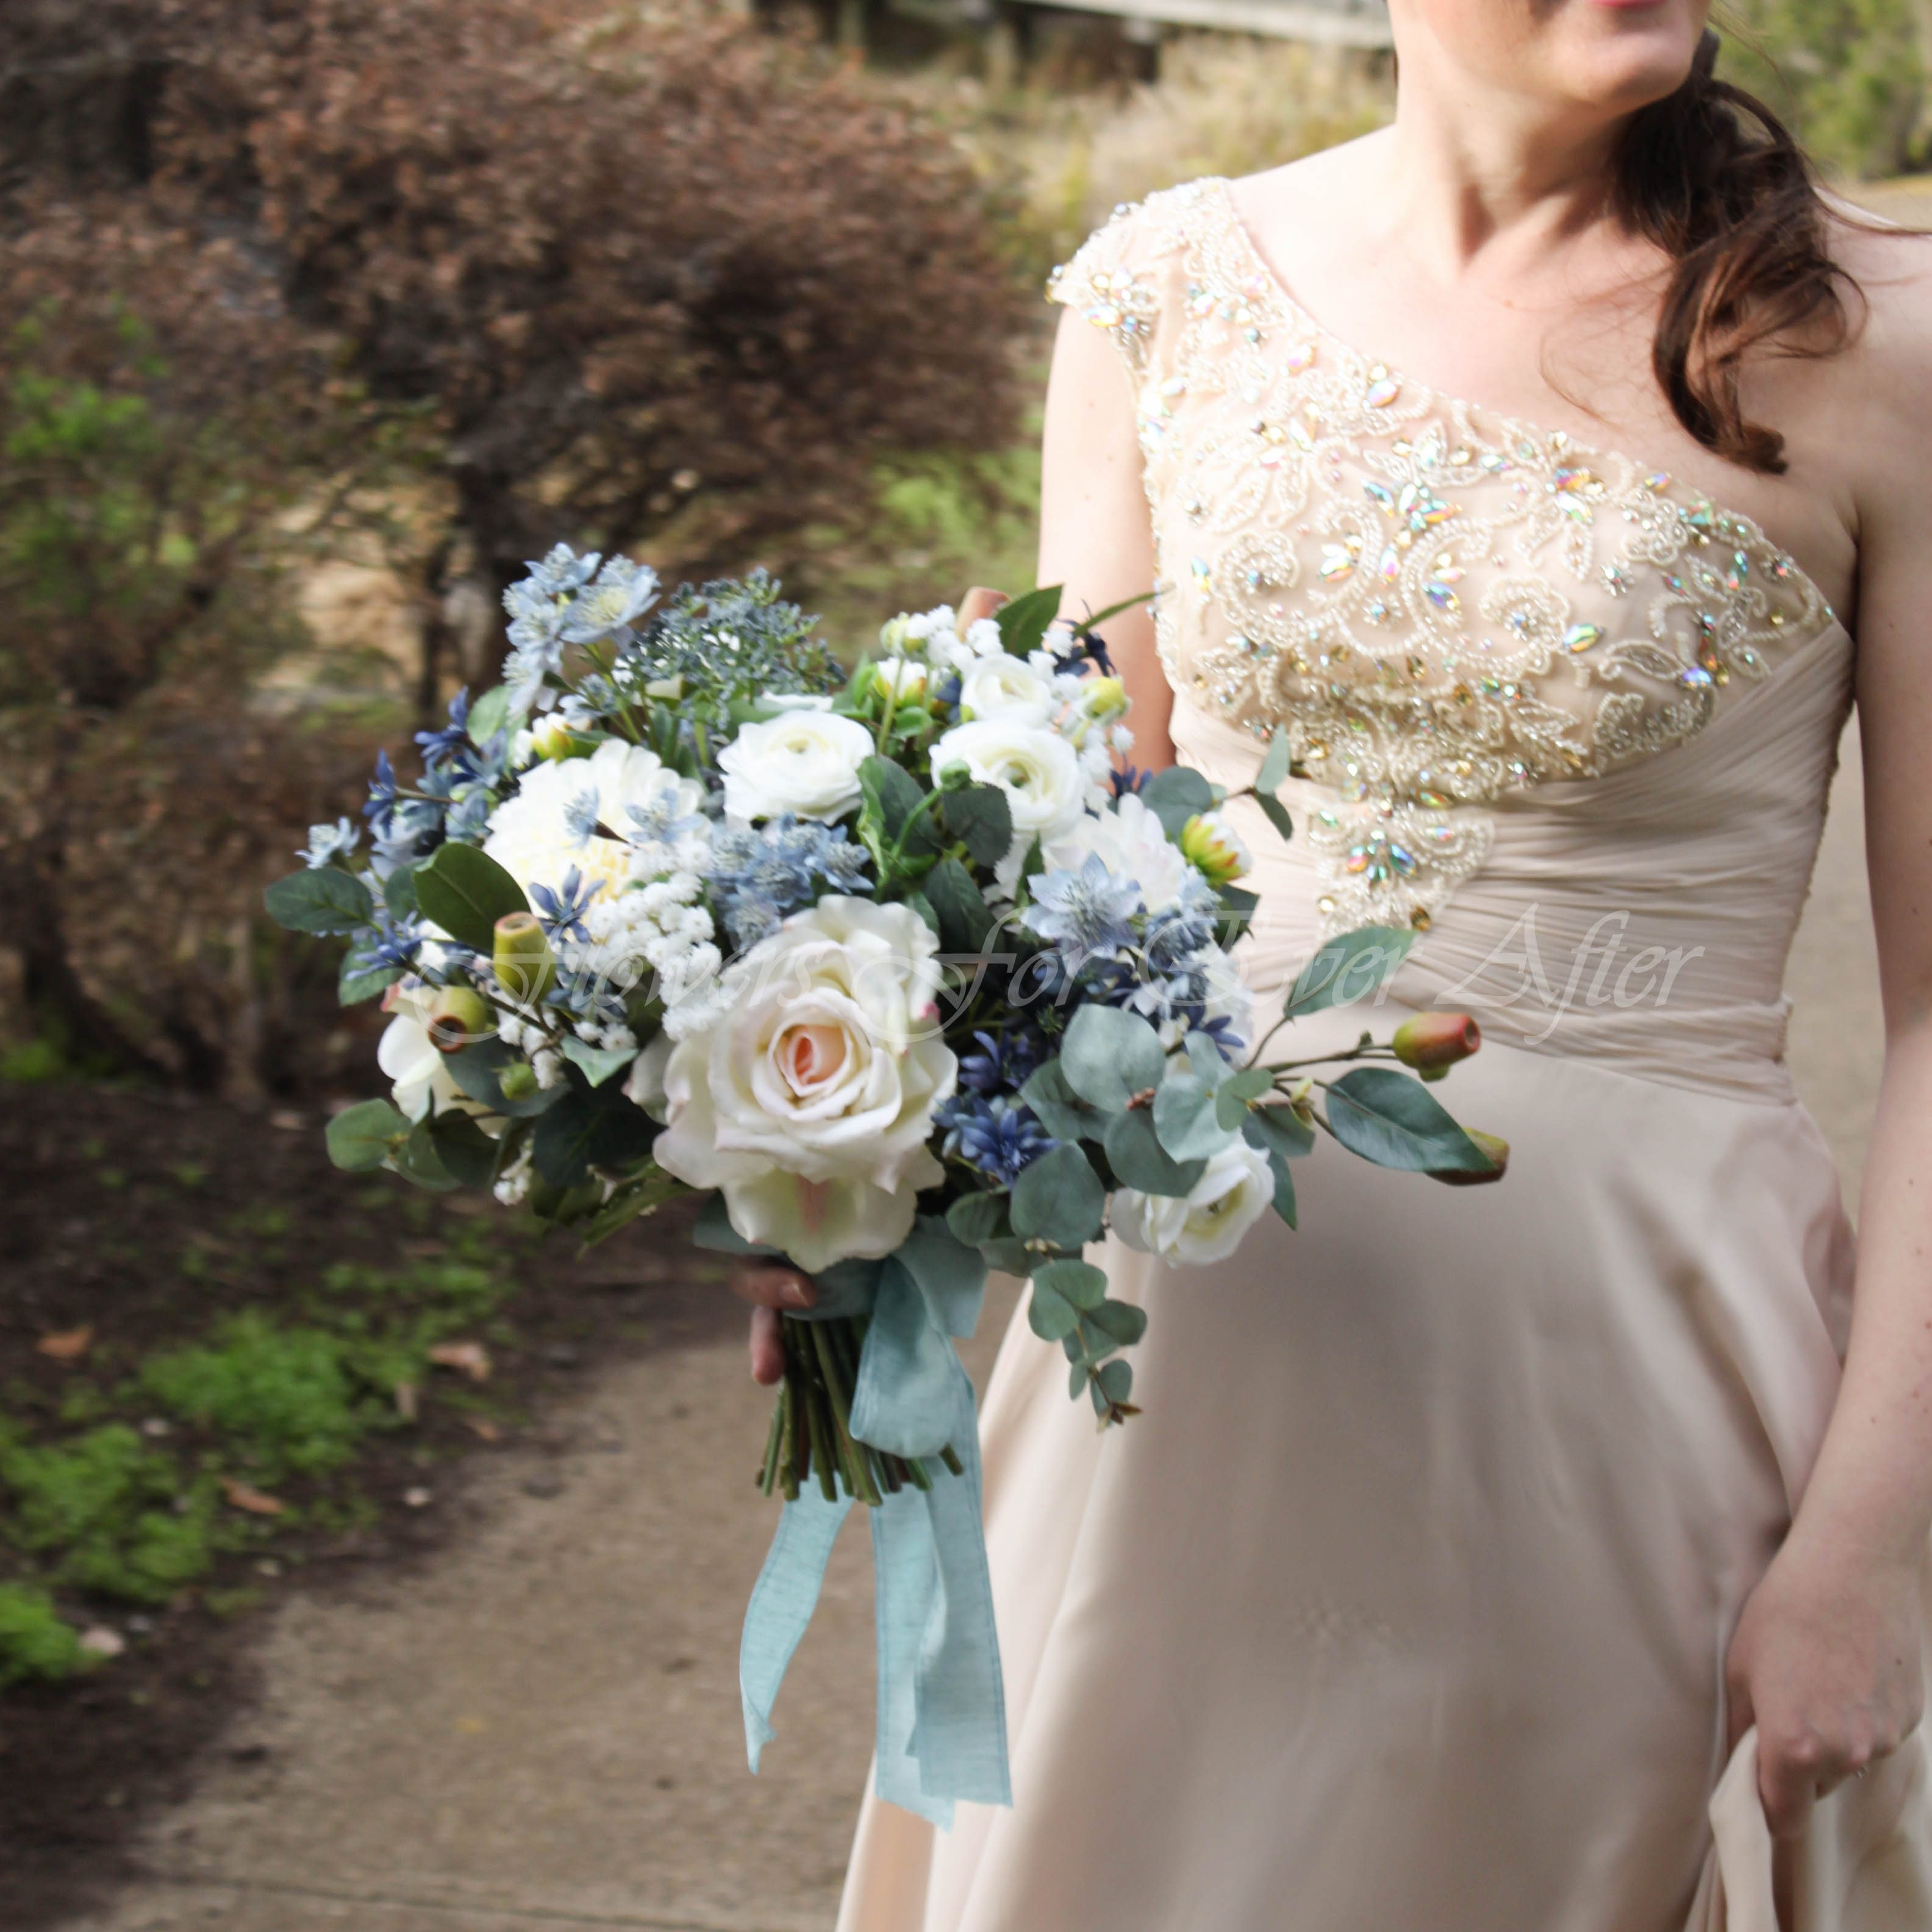 Silk Artificial Faux Fake Wedding Bouquet, filled with Artificial Roses. foliage and faux flower elements in various blue tones. Made in Melbourne by Australia's Leading Artificial wedding florist. Custom Orders Welcome & Worldwide Shipping Available.